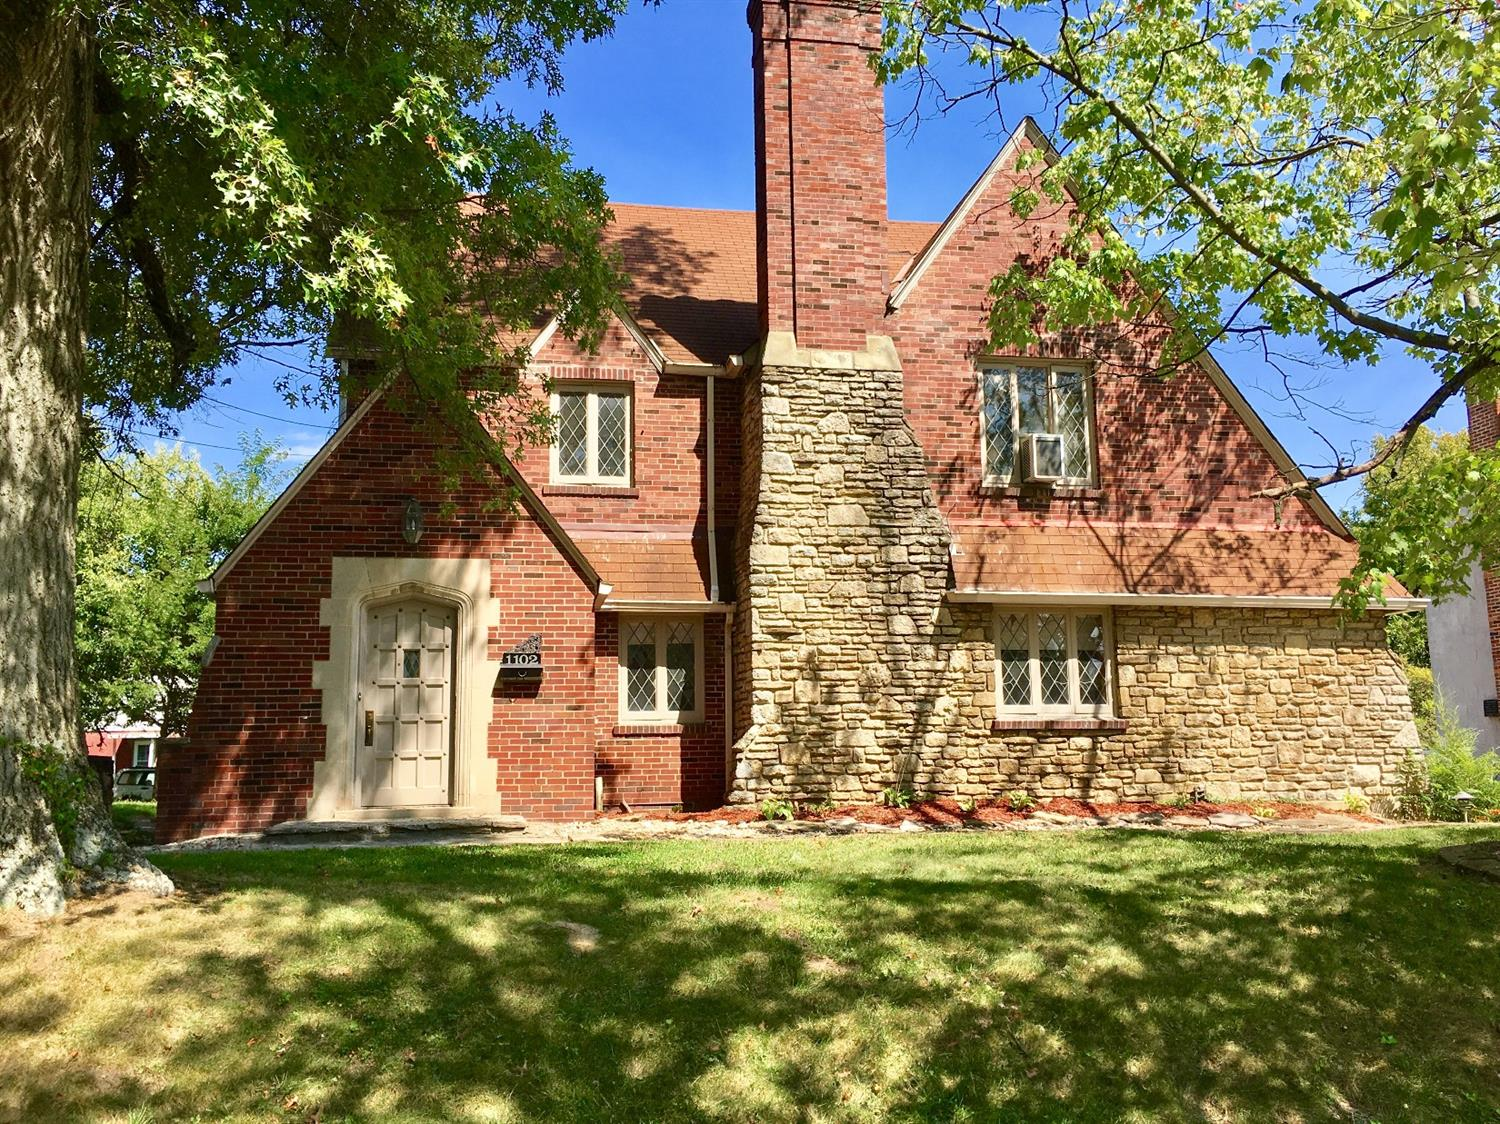 Beautiful English tudor on cul-de-sac sitting in the heart of Paddock Hills. Gorgeous wood build-ins, fireplace and large bedrooms. Updated stainless steel appliances, swimming pool, large living room with beautiful build in storage and wonderful fireplace and other great amenities. Hurry, won't last long!